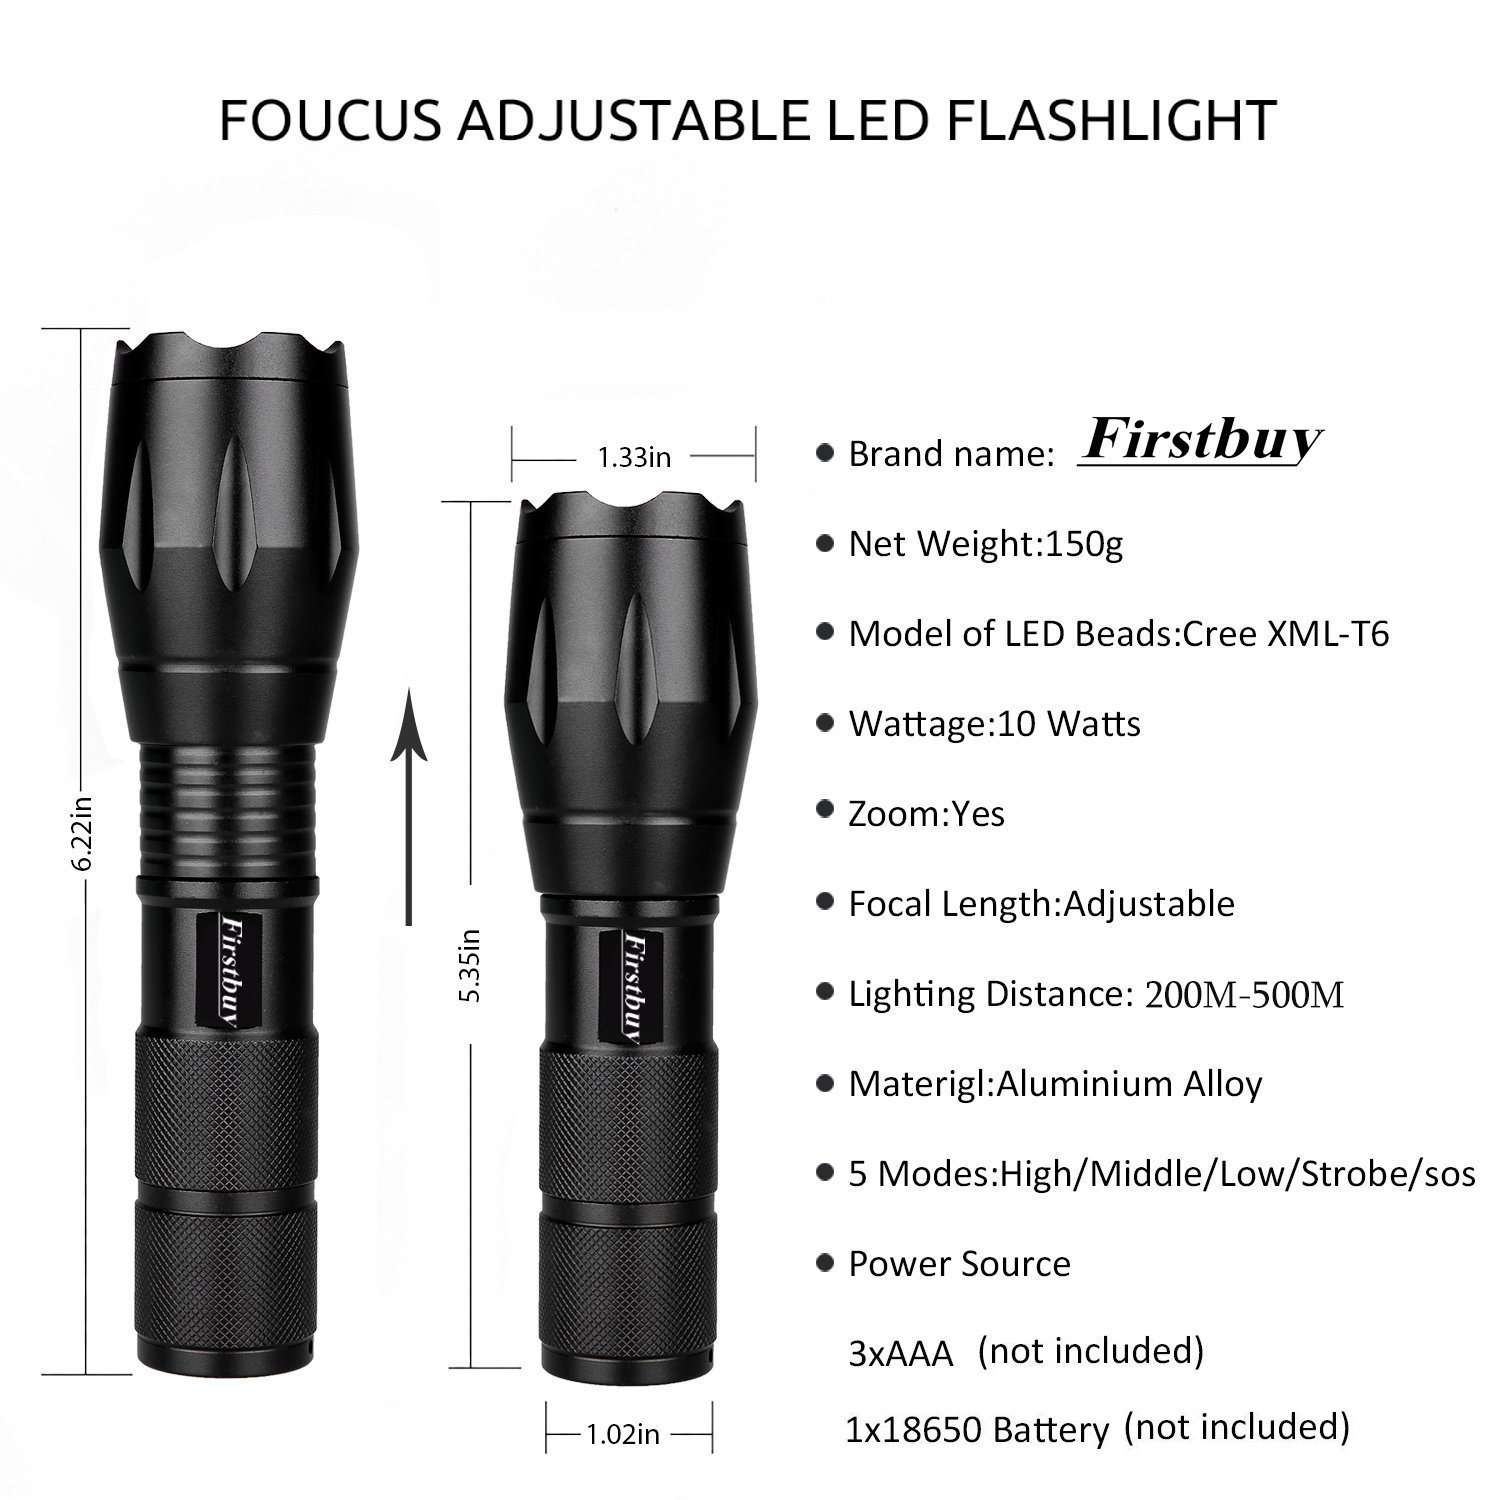 Firstbuy Led Flashlight 1000 Lumen A100 Cree Tactical LED Handheld Flashlight,5 Modes Brightest Tactical Flashlights Zoomable Adjustable Focus With Key Chain Flashlight,Water Resistant for Outdoors